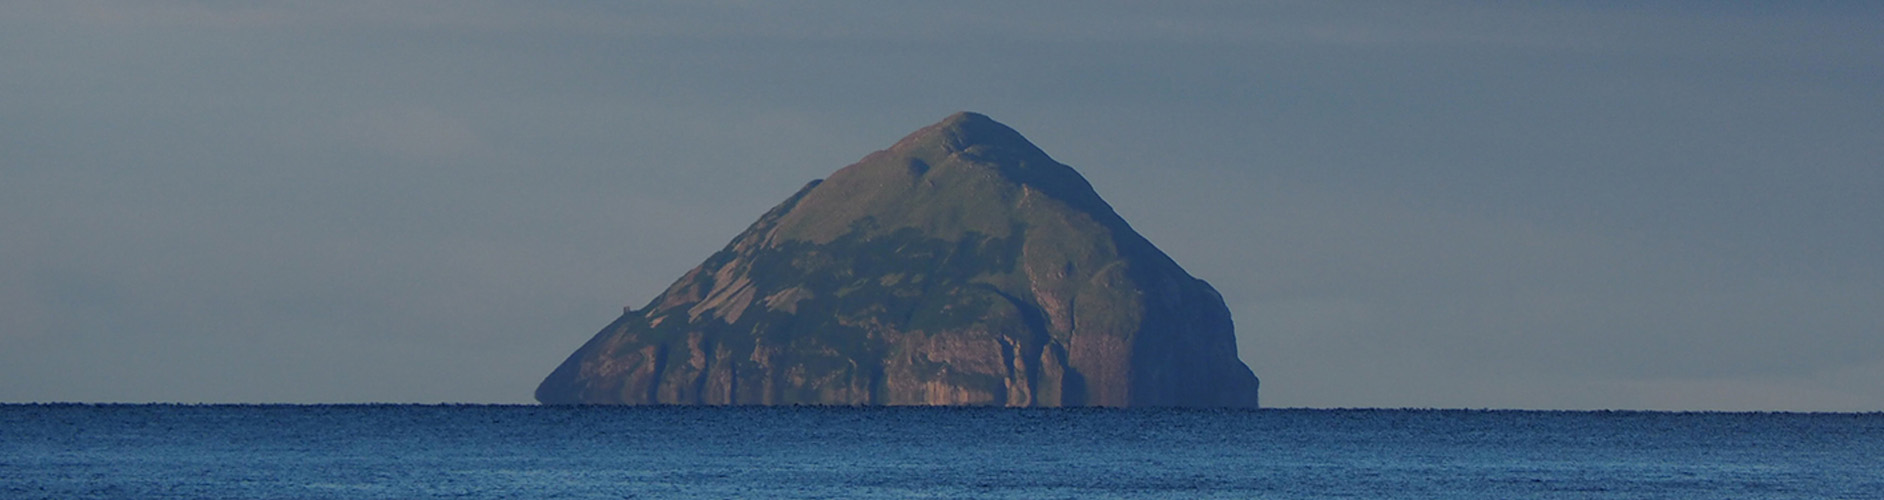 Cruising in Scotland - Arran and Ailsa Craig